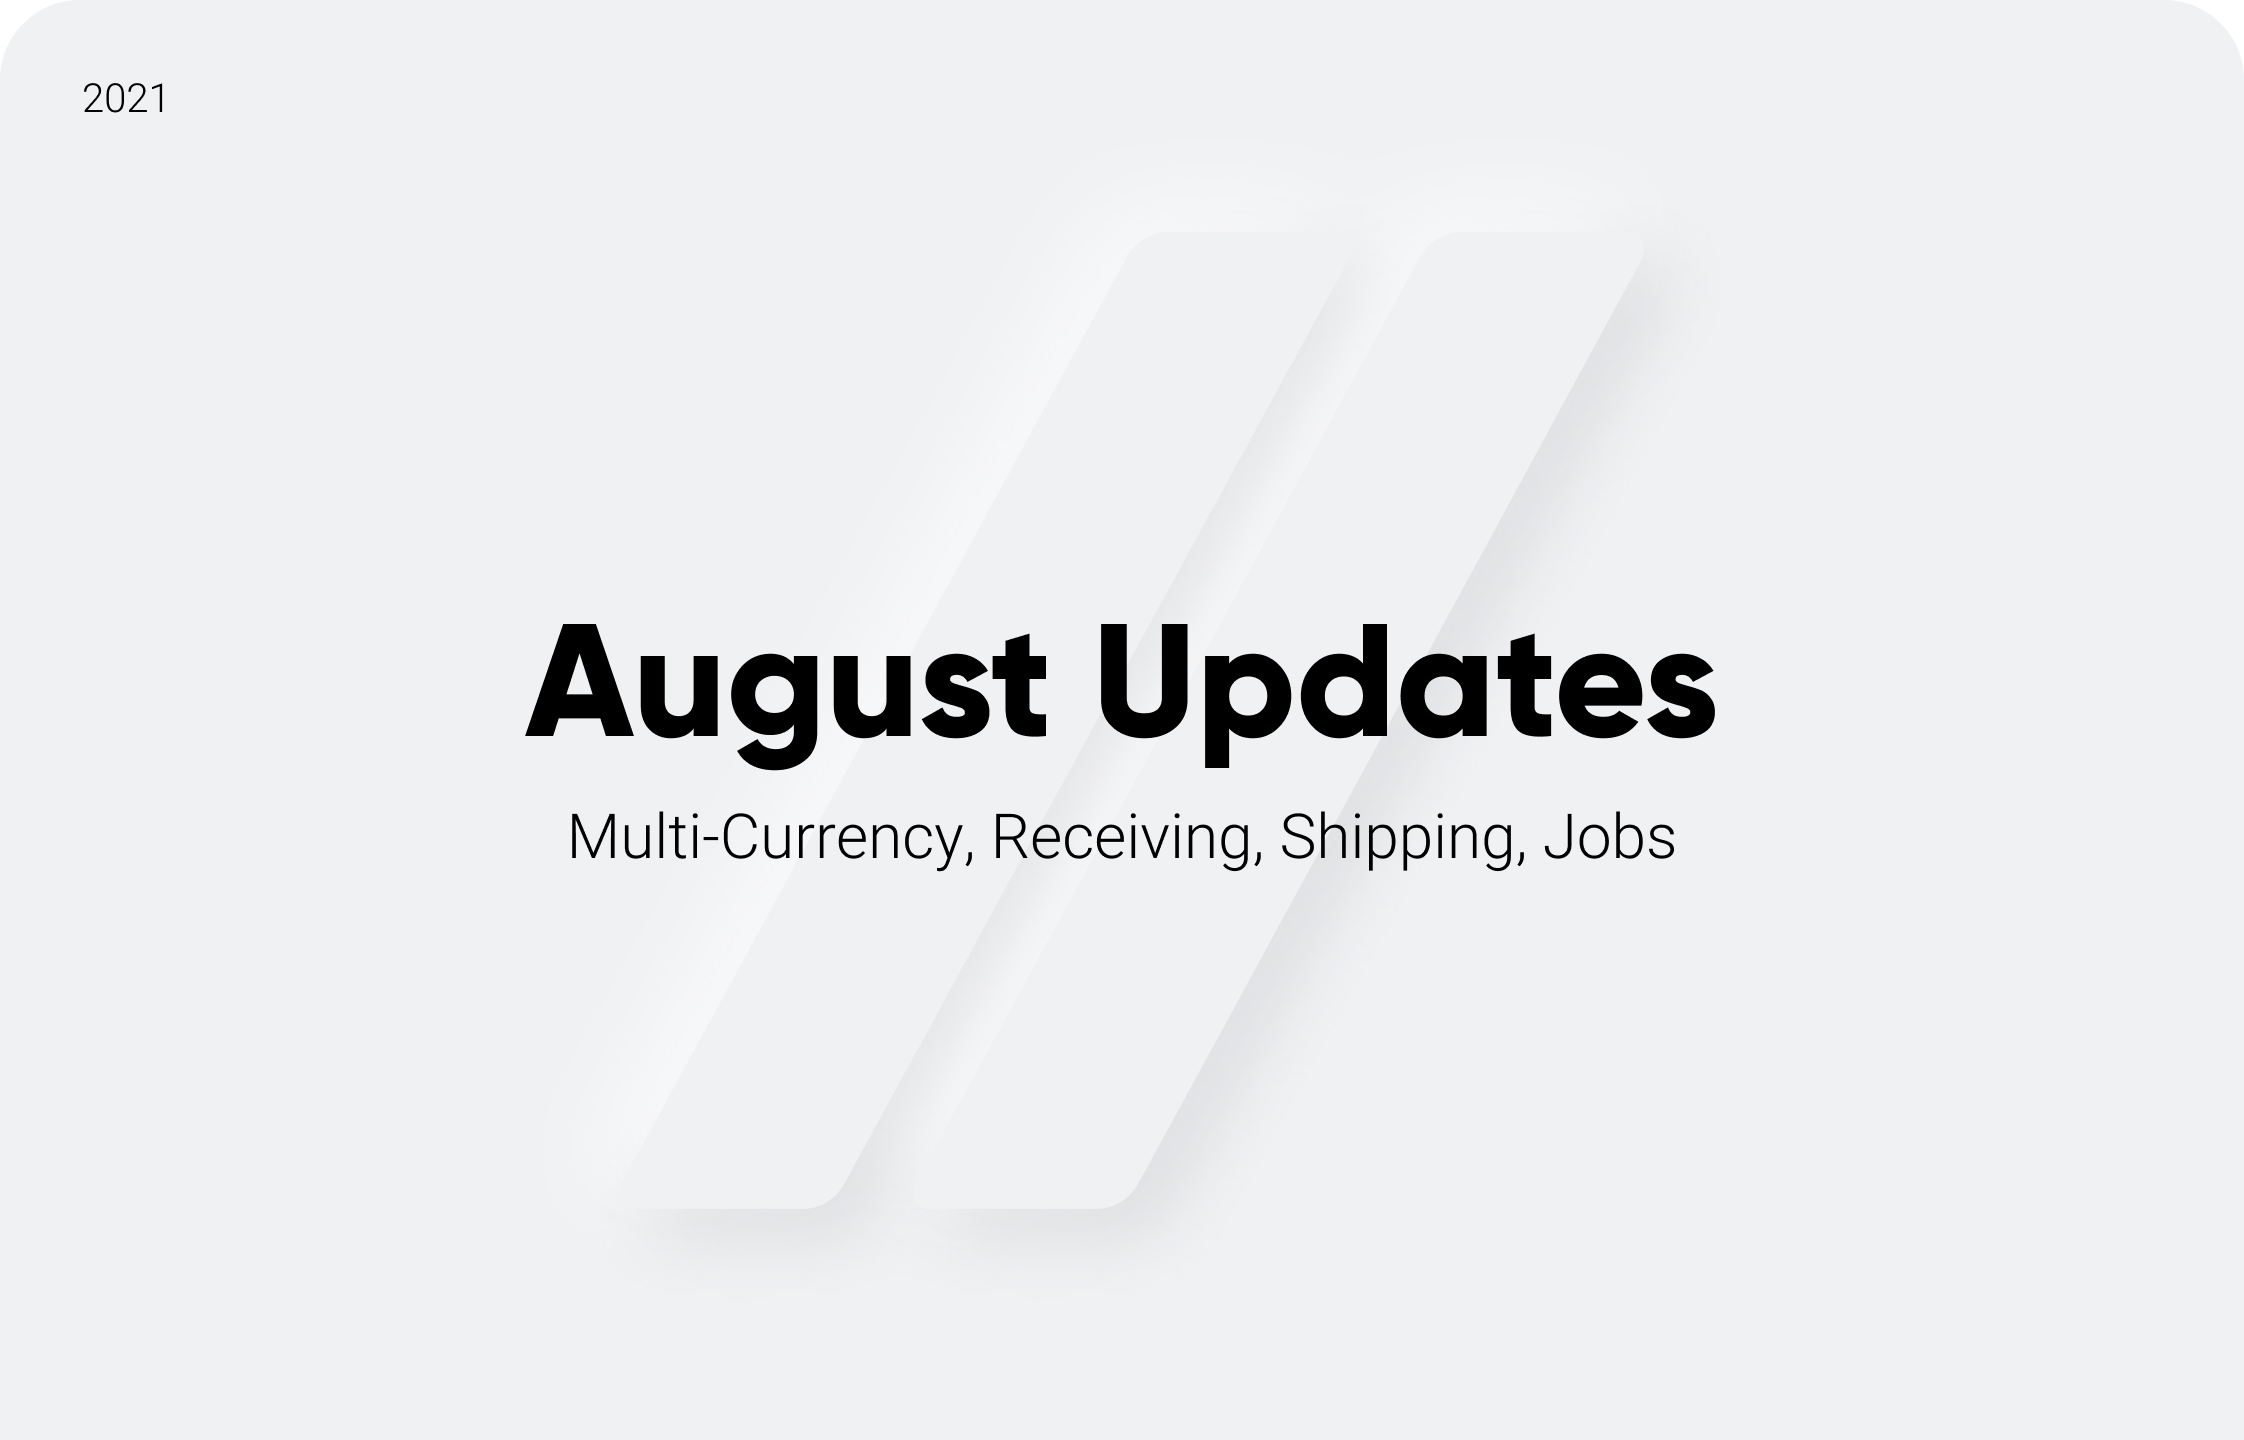 August Update: Multi-Currency, Receiving, Shipping, Jobs